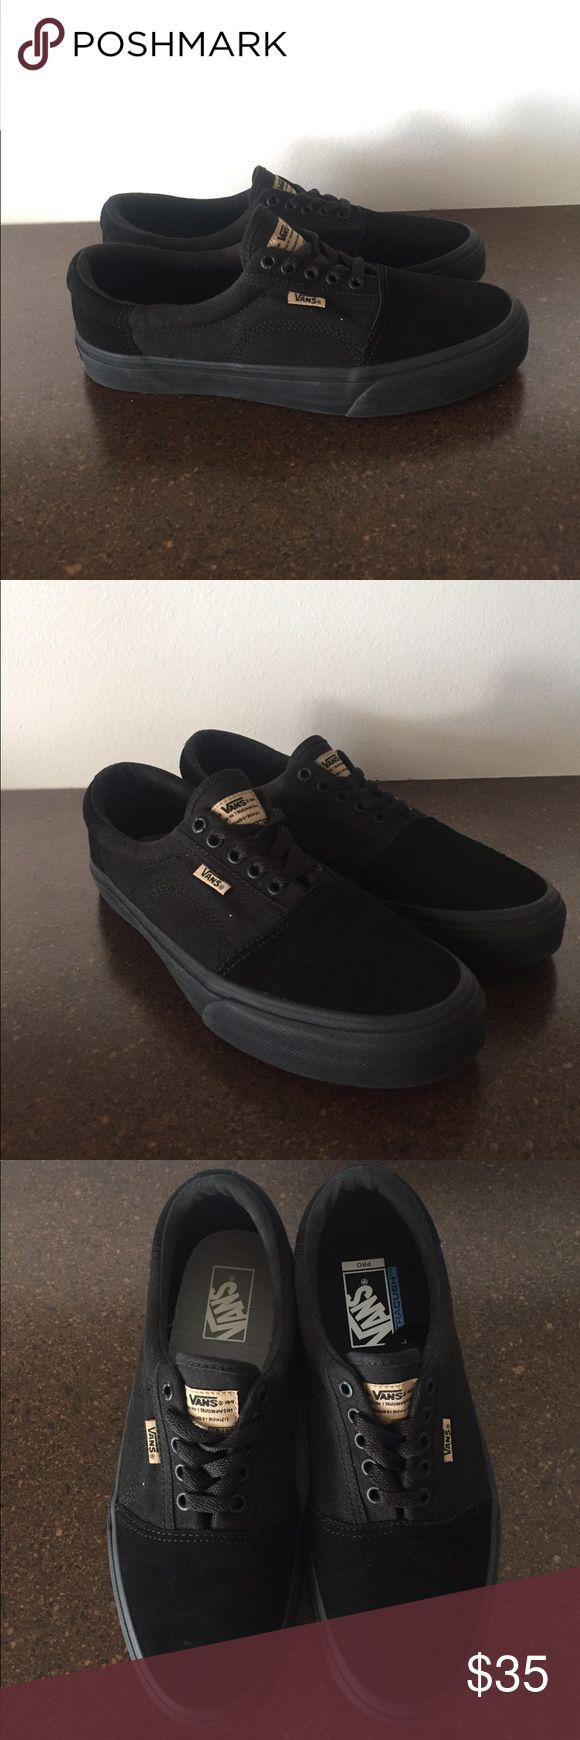 Brand New Pro Era Vans Never before worn all black Pro Era Vans redesigned by Geoff Rowley. Shoes have different colored Vans insoles. Perfect condition! Vans Shoes Sneakers